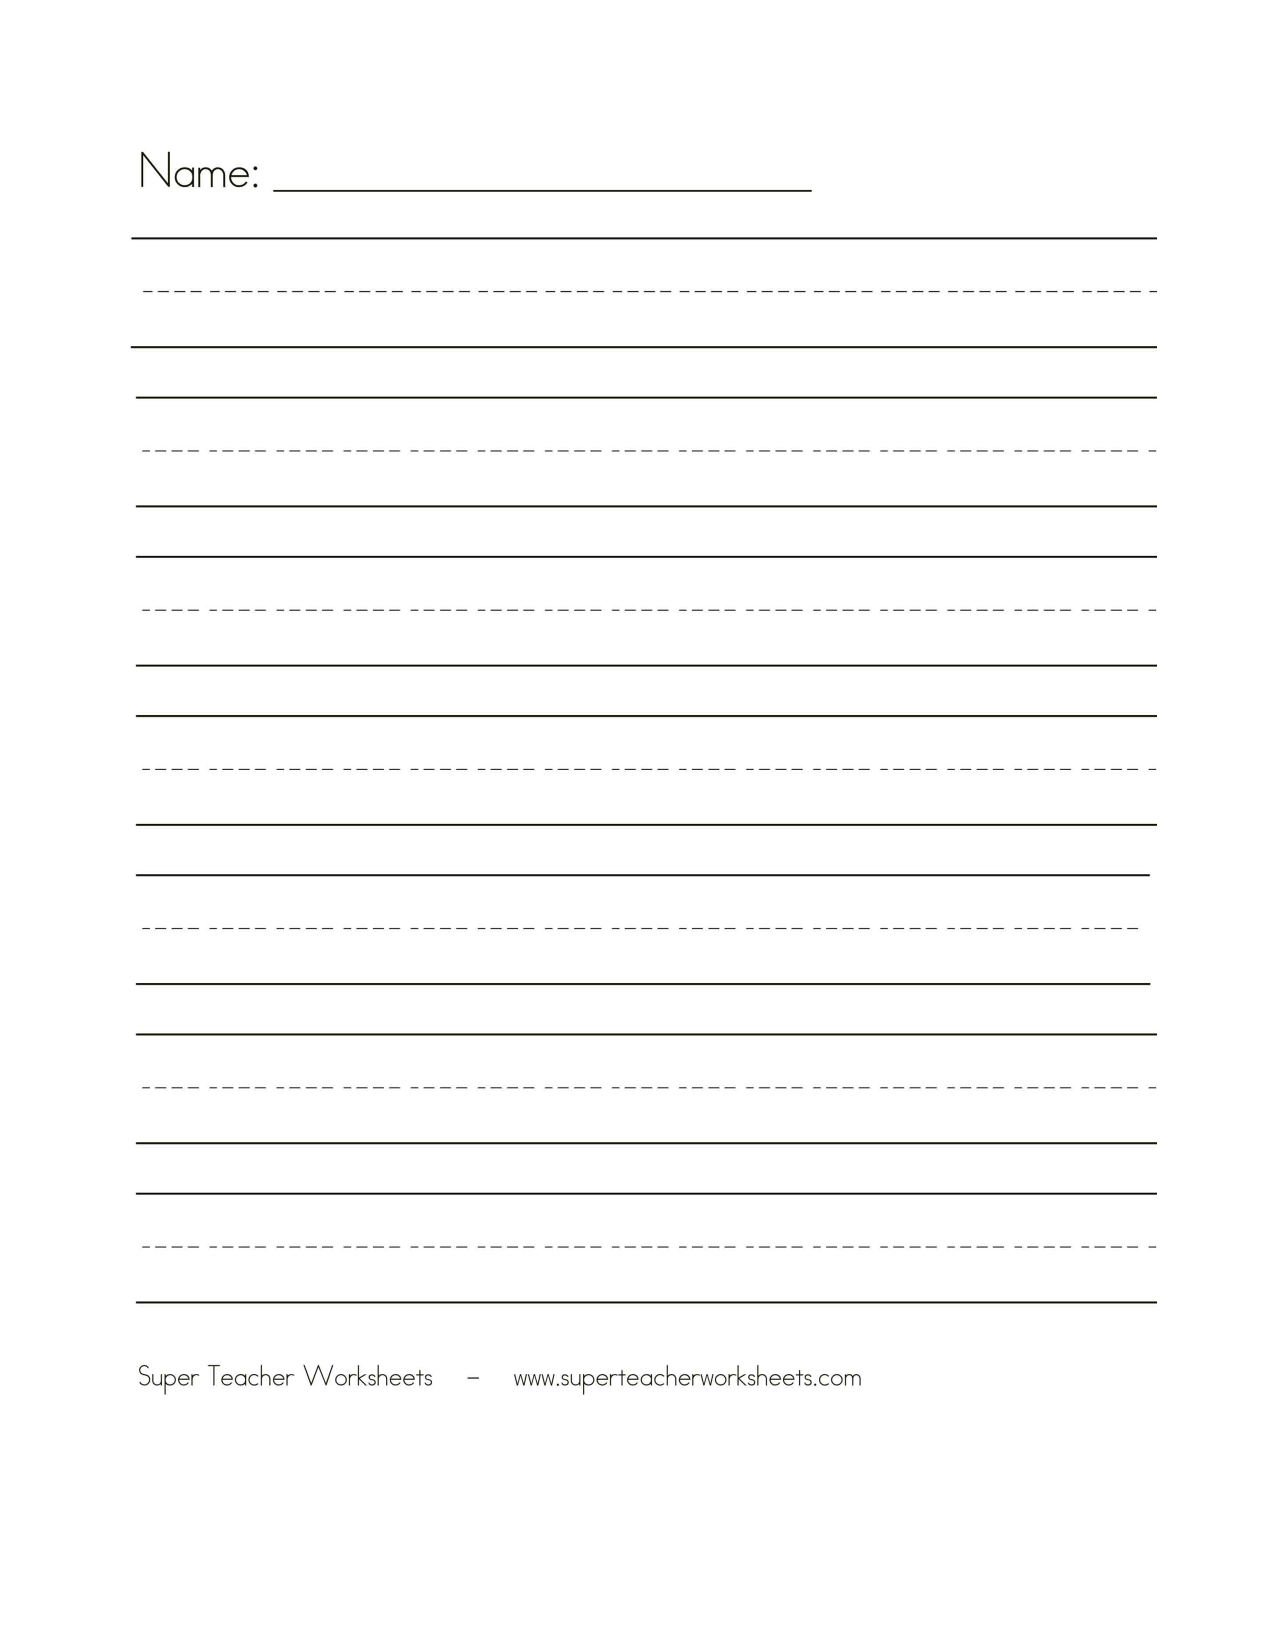 Template Printable Images Gallery Category Page 1